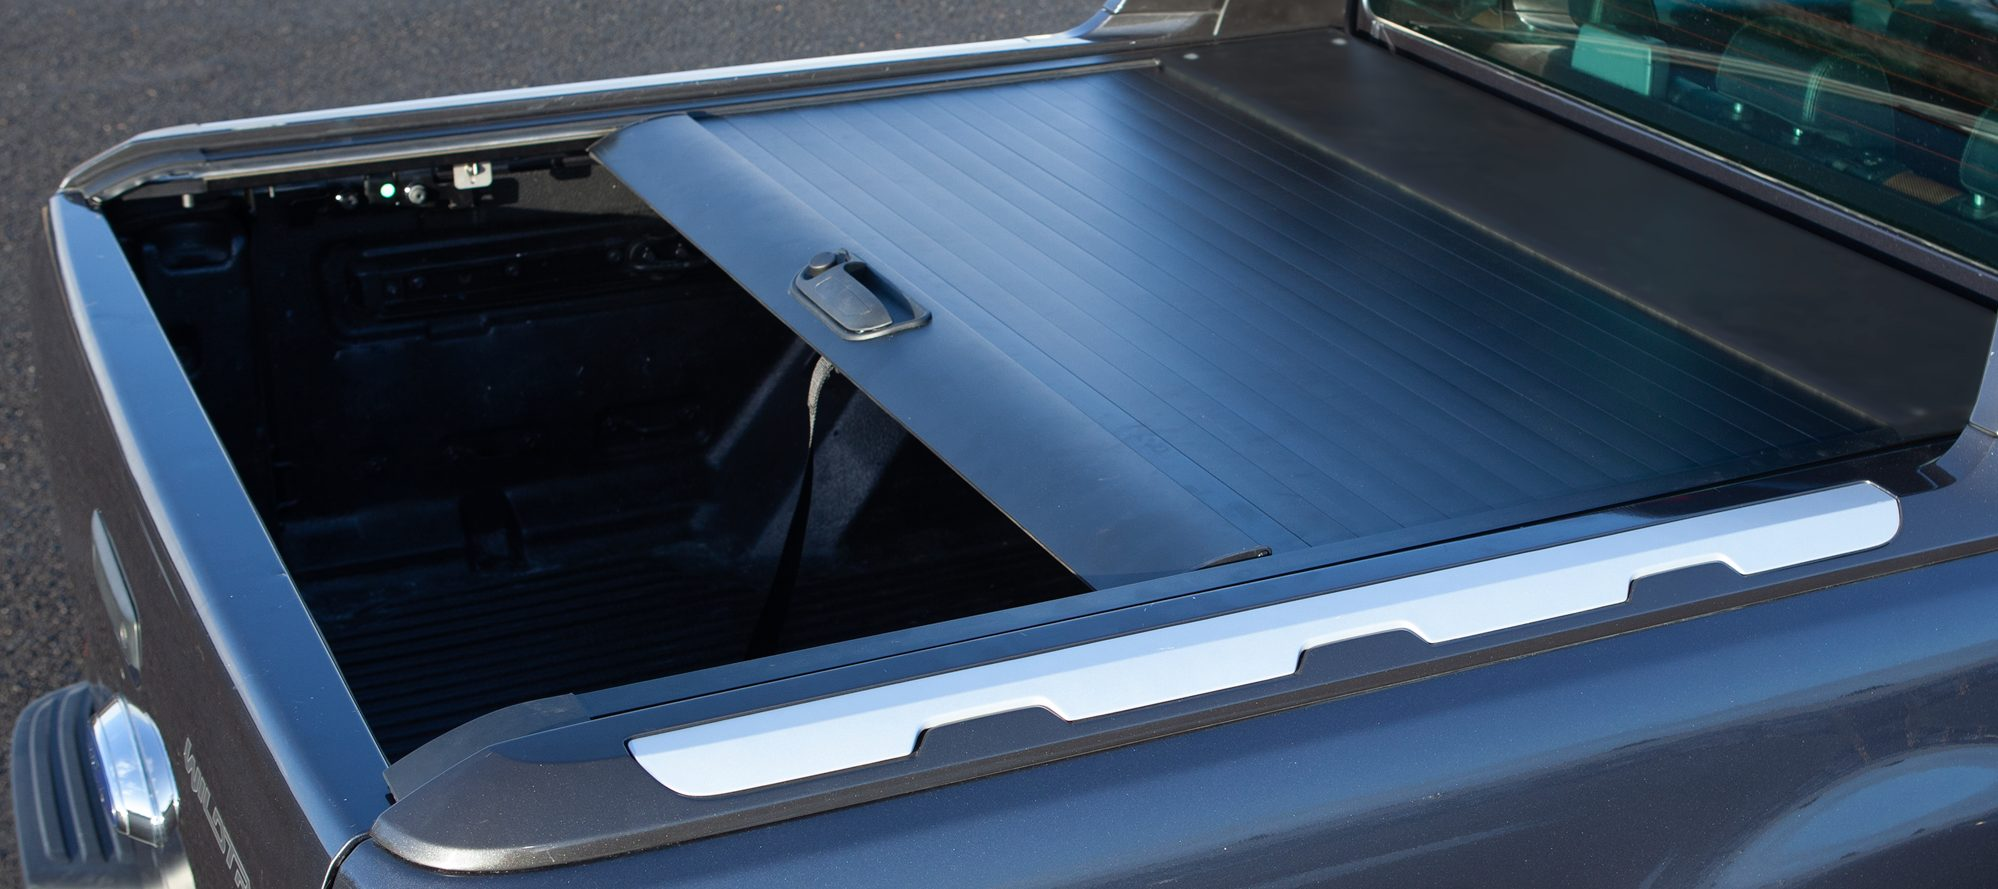 Why Should You Prepare A Tonneau Cover For Your Ford Ranger?